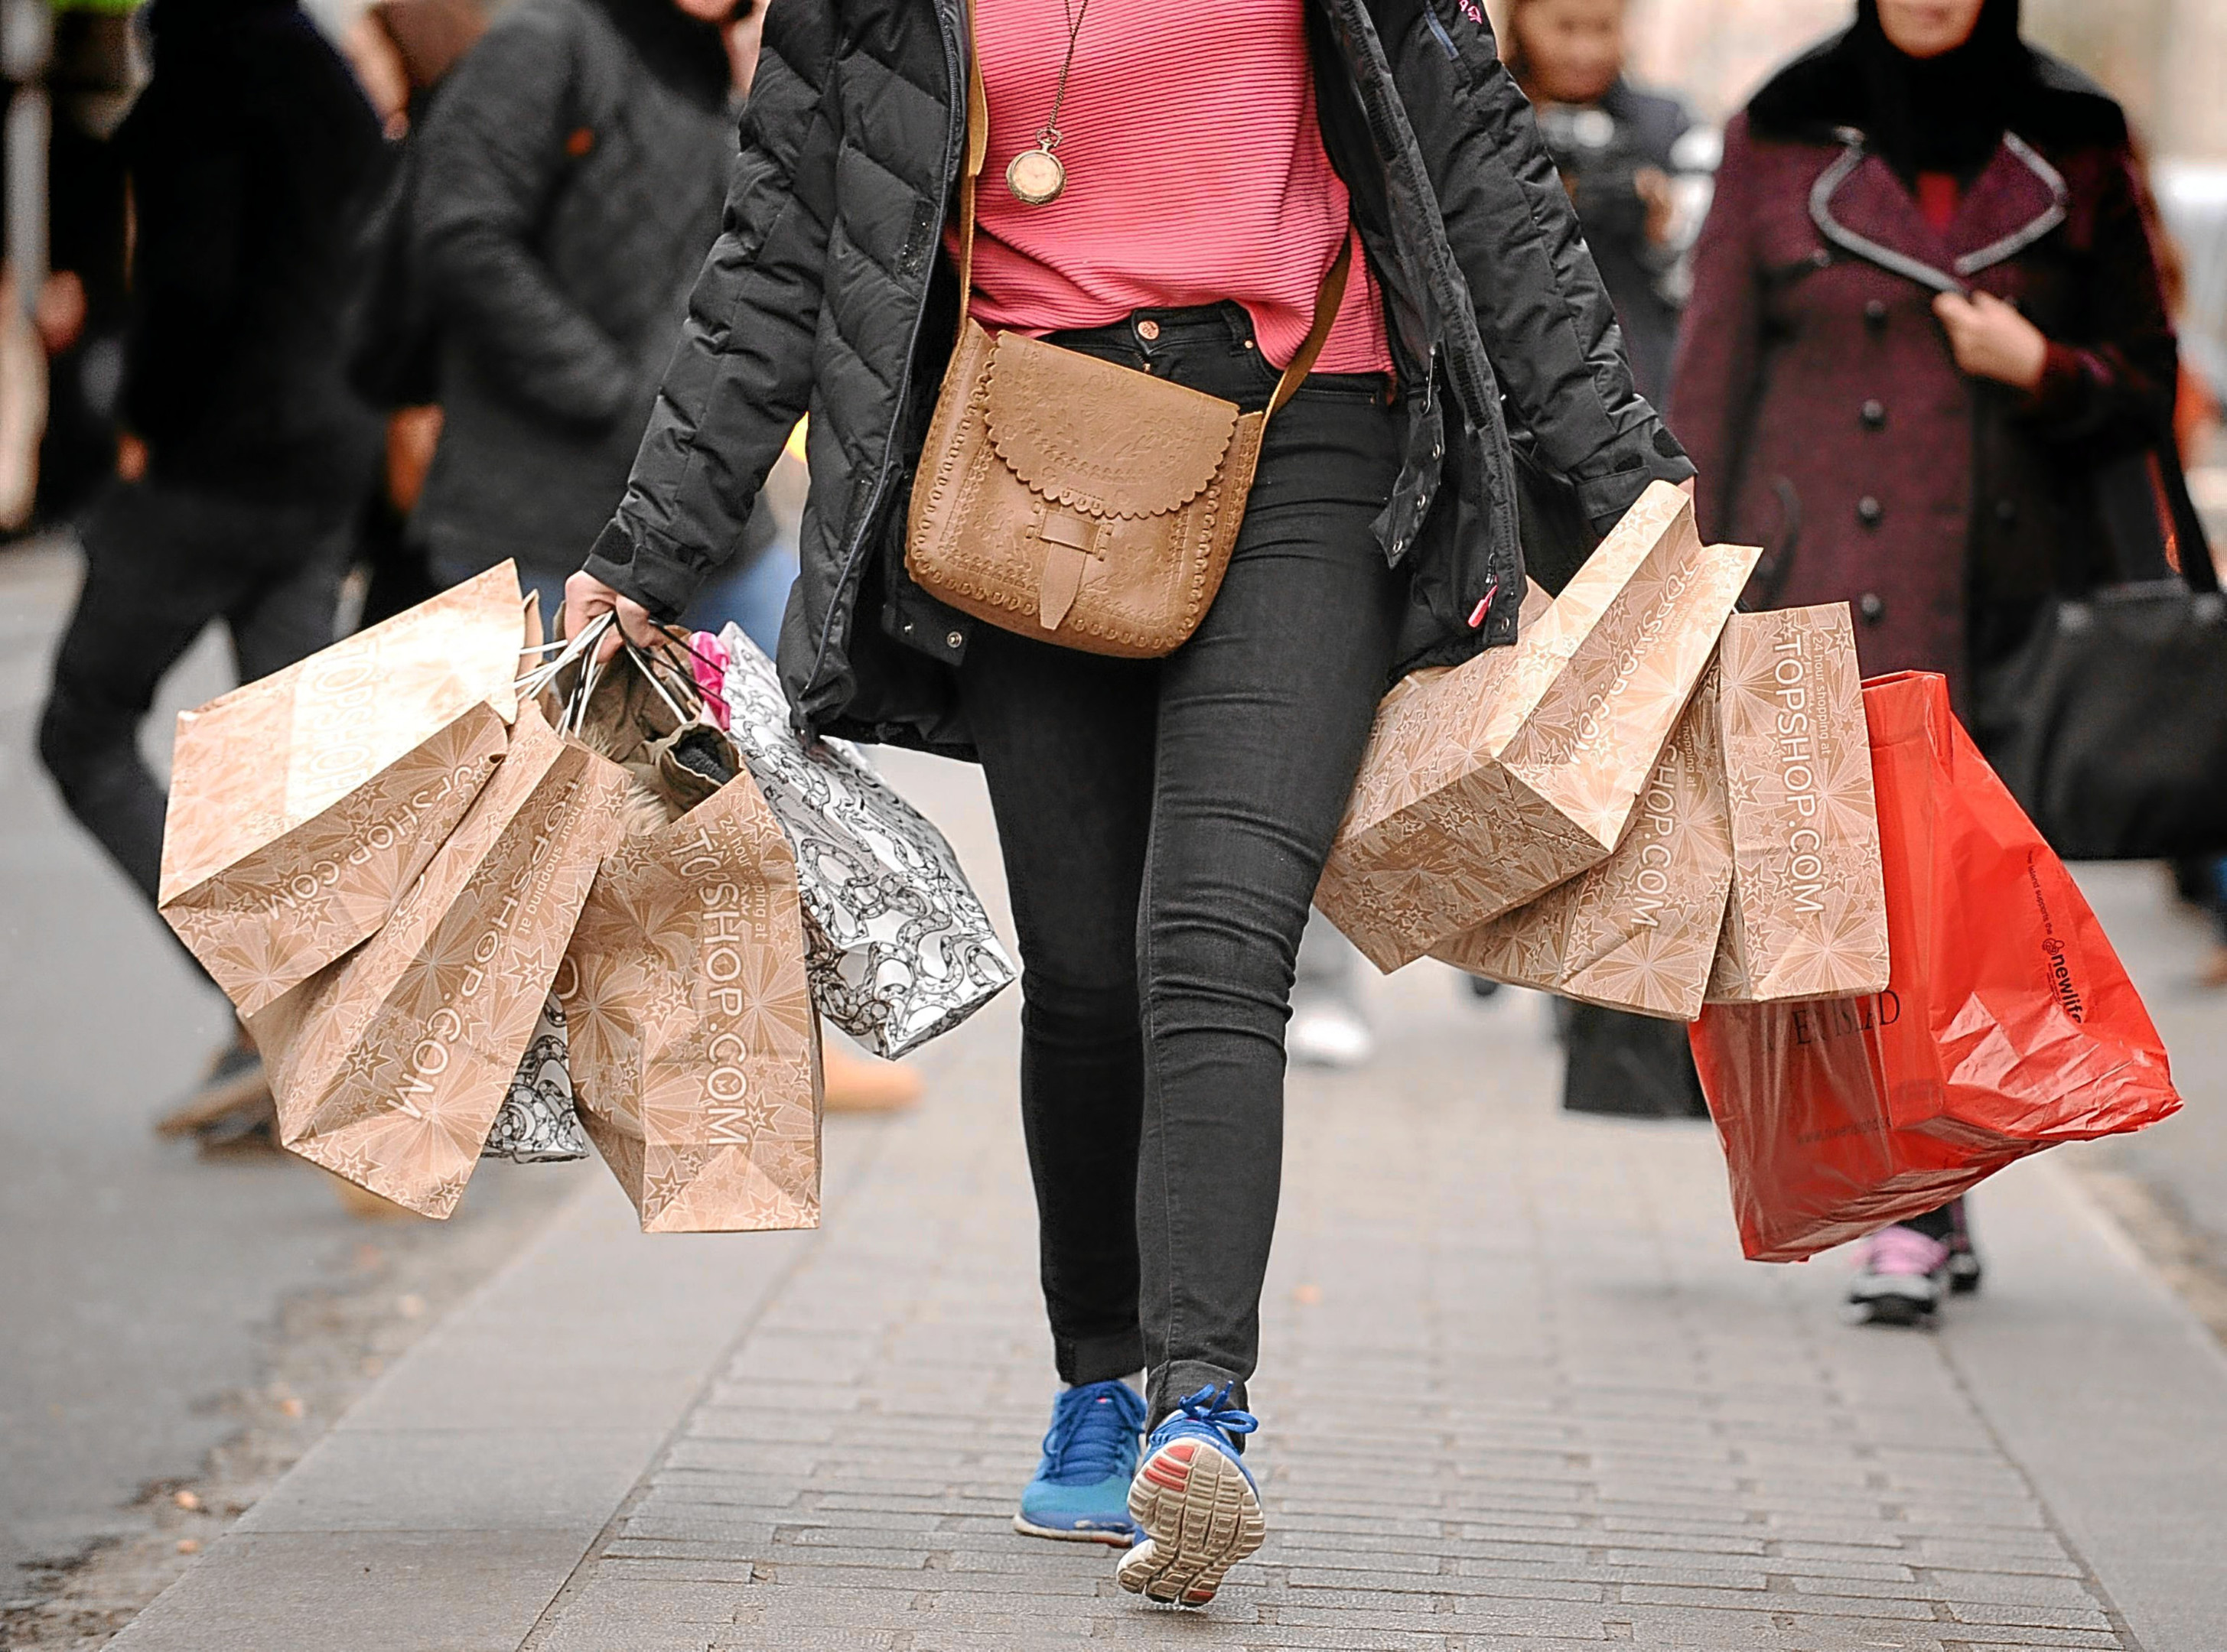 Shoppers will be on the lookout for bargains again this Black Friday